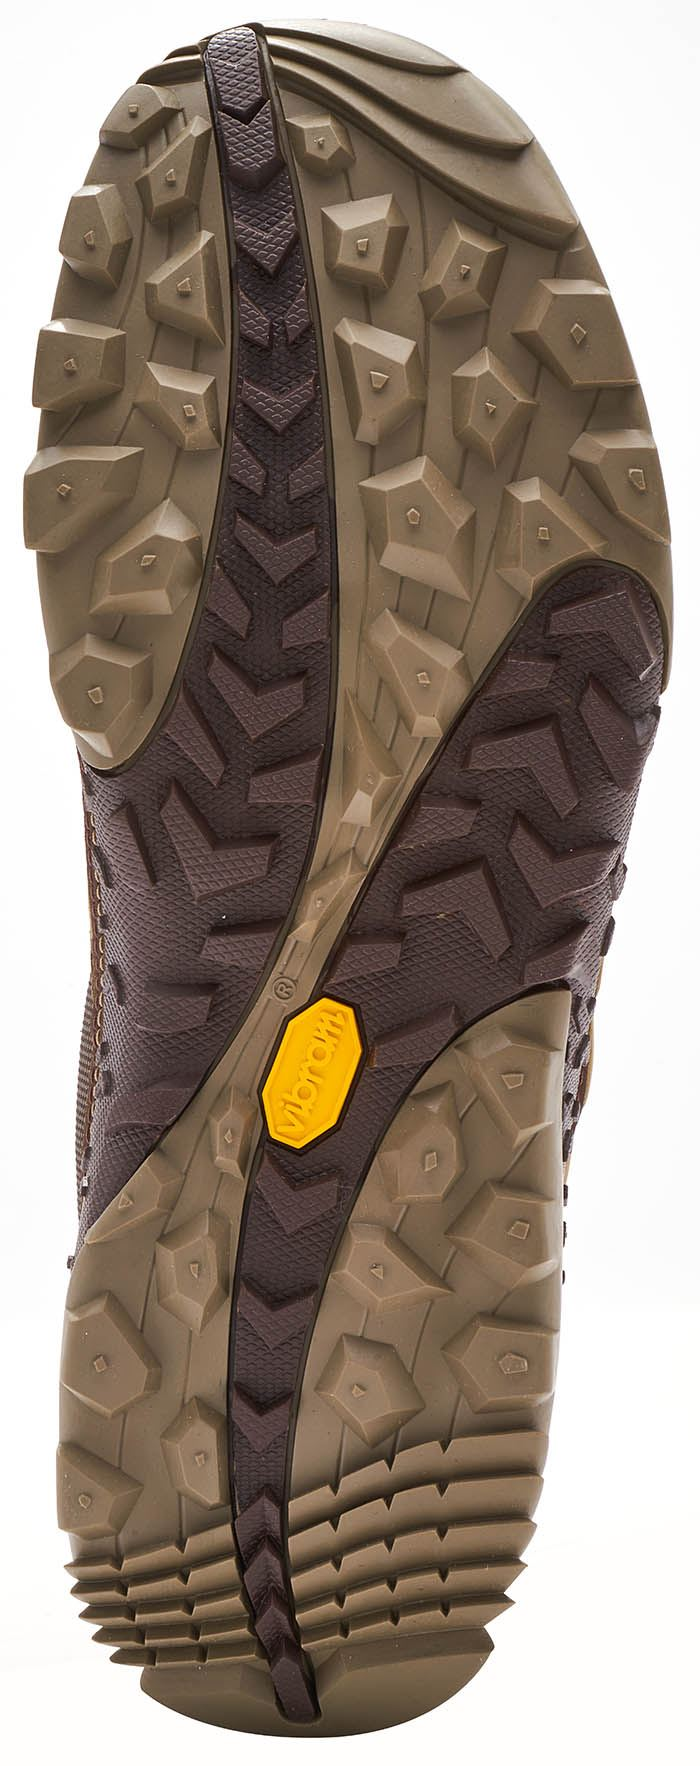 Merrell-Annex-Track-Low-Trainers-in-Cloudy-amp-Clay-Brown-amp-Sodalite-Blue thumbnail 13